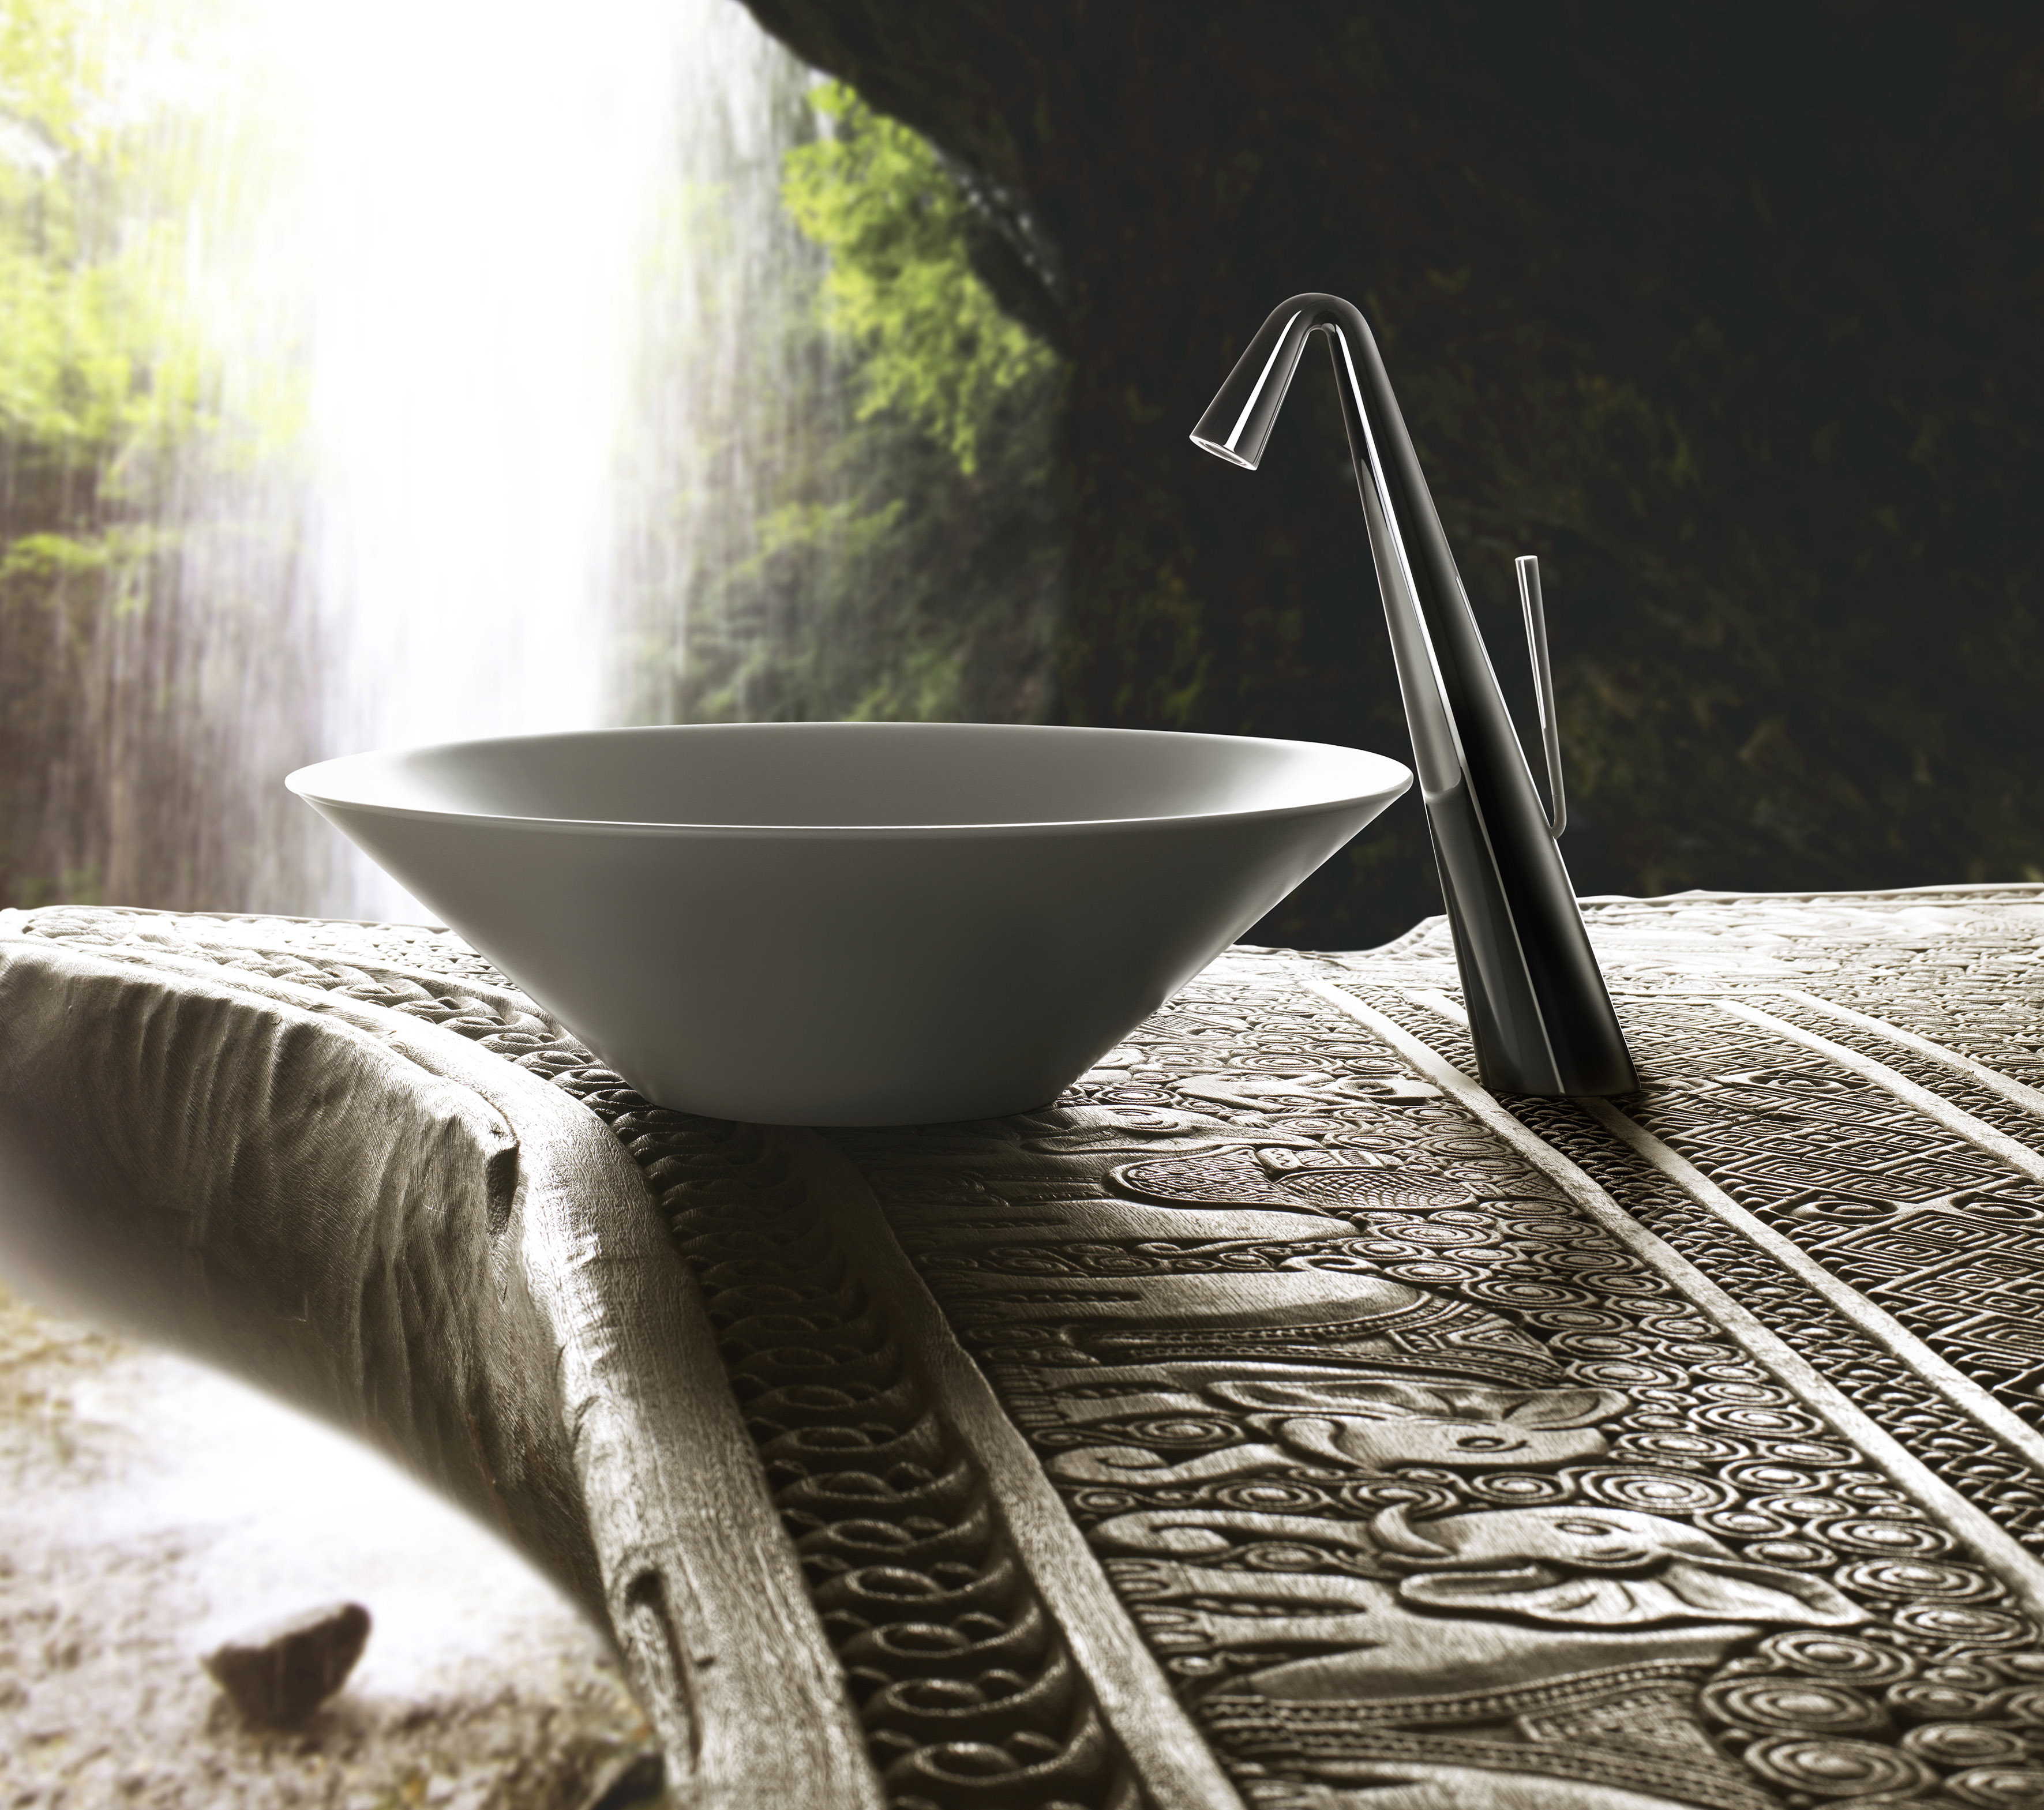 gessi cono sink and tap presenting the straight lines and simplicity of the collection